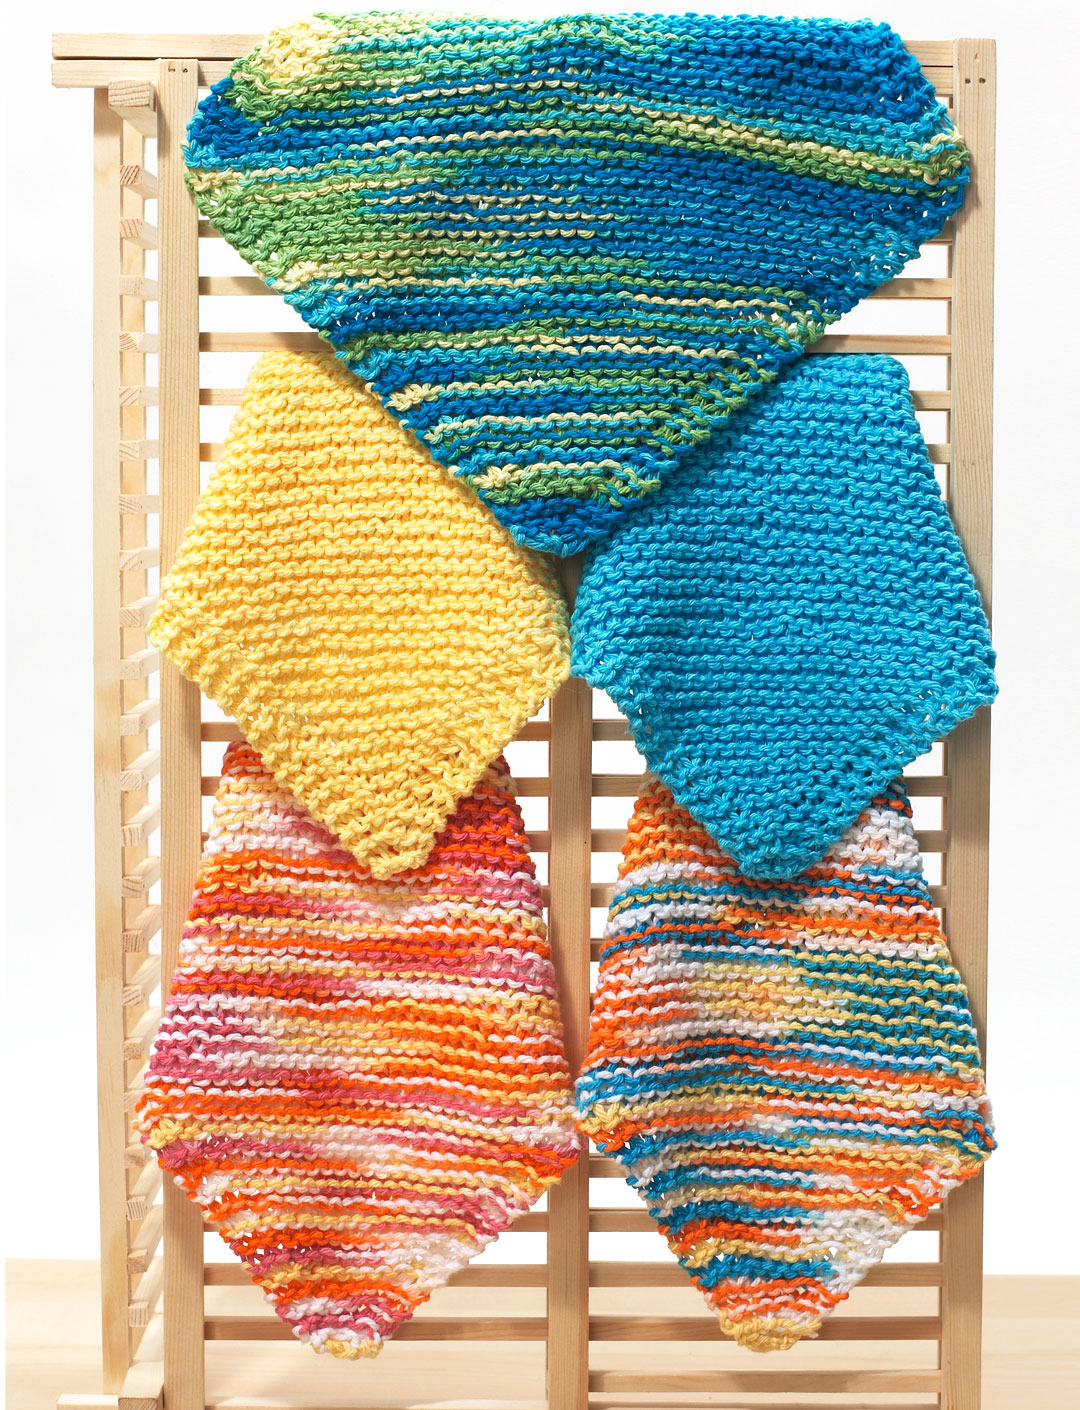 Free Knitted Dishcloth Pattern Easy Knit Dishcloth Pattern Diagonal Knit Dishcloth For Beginners